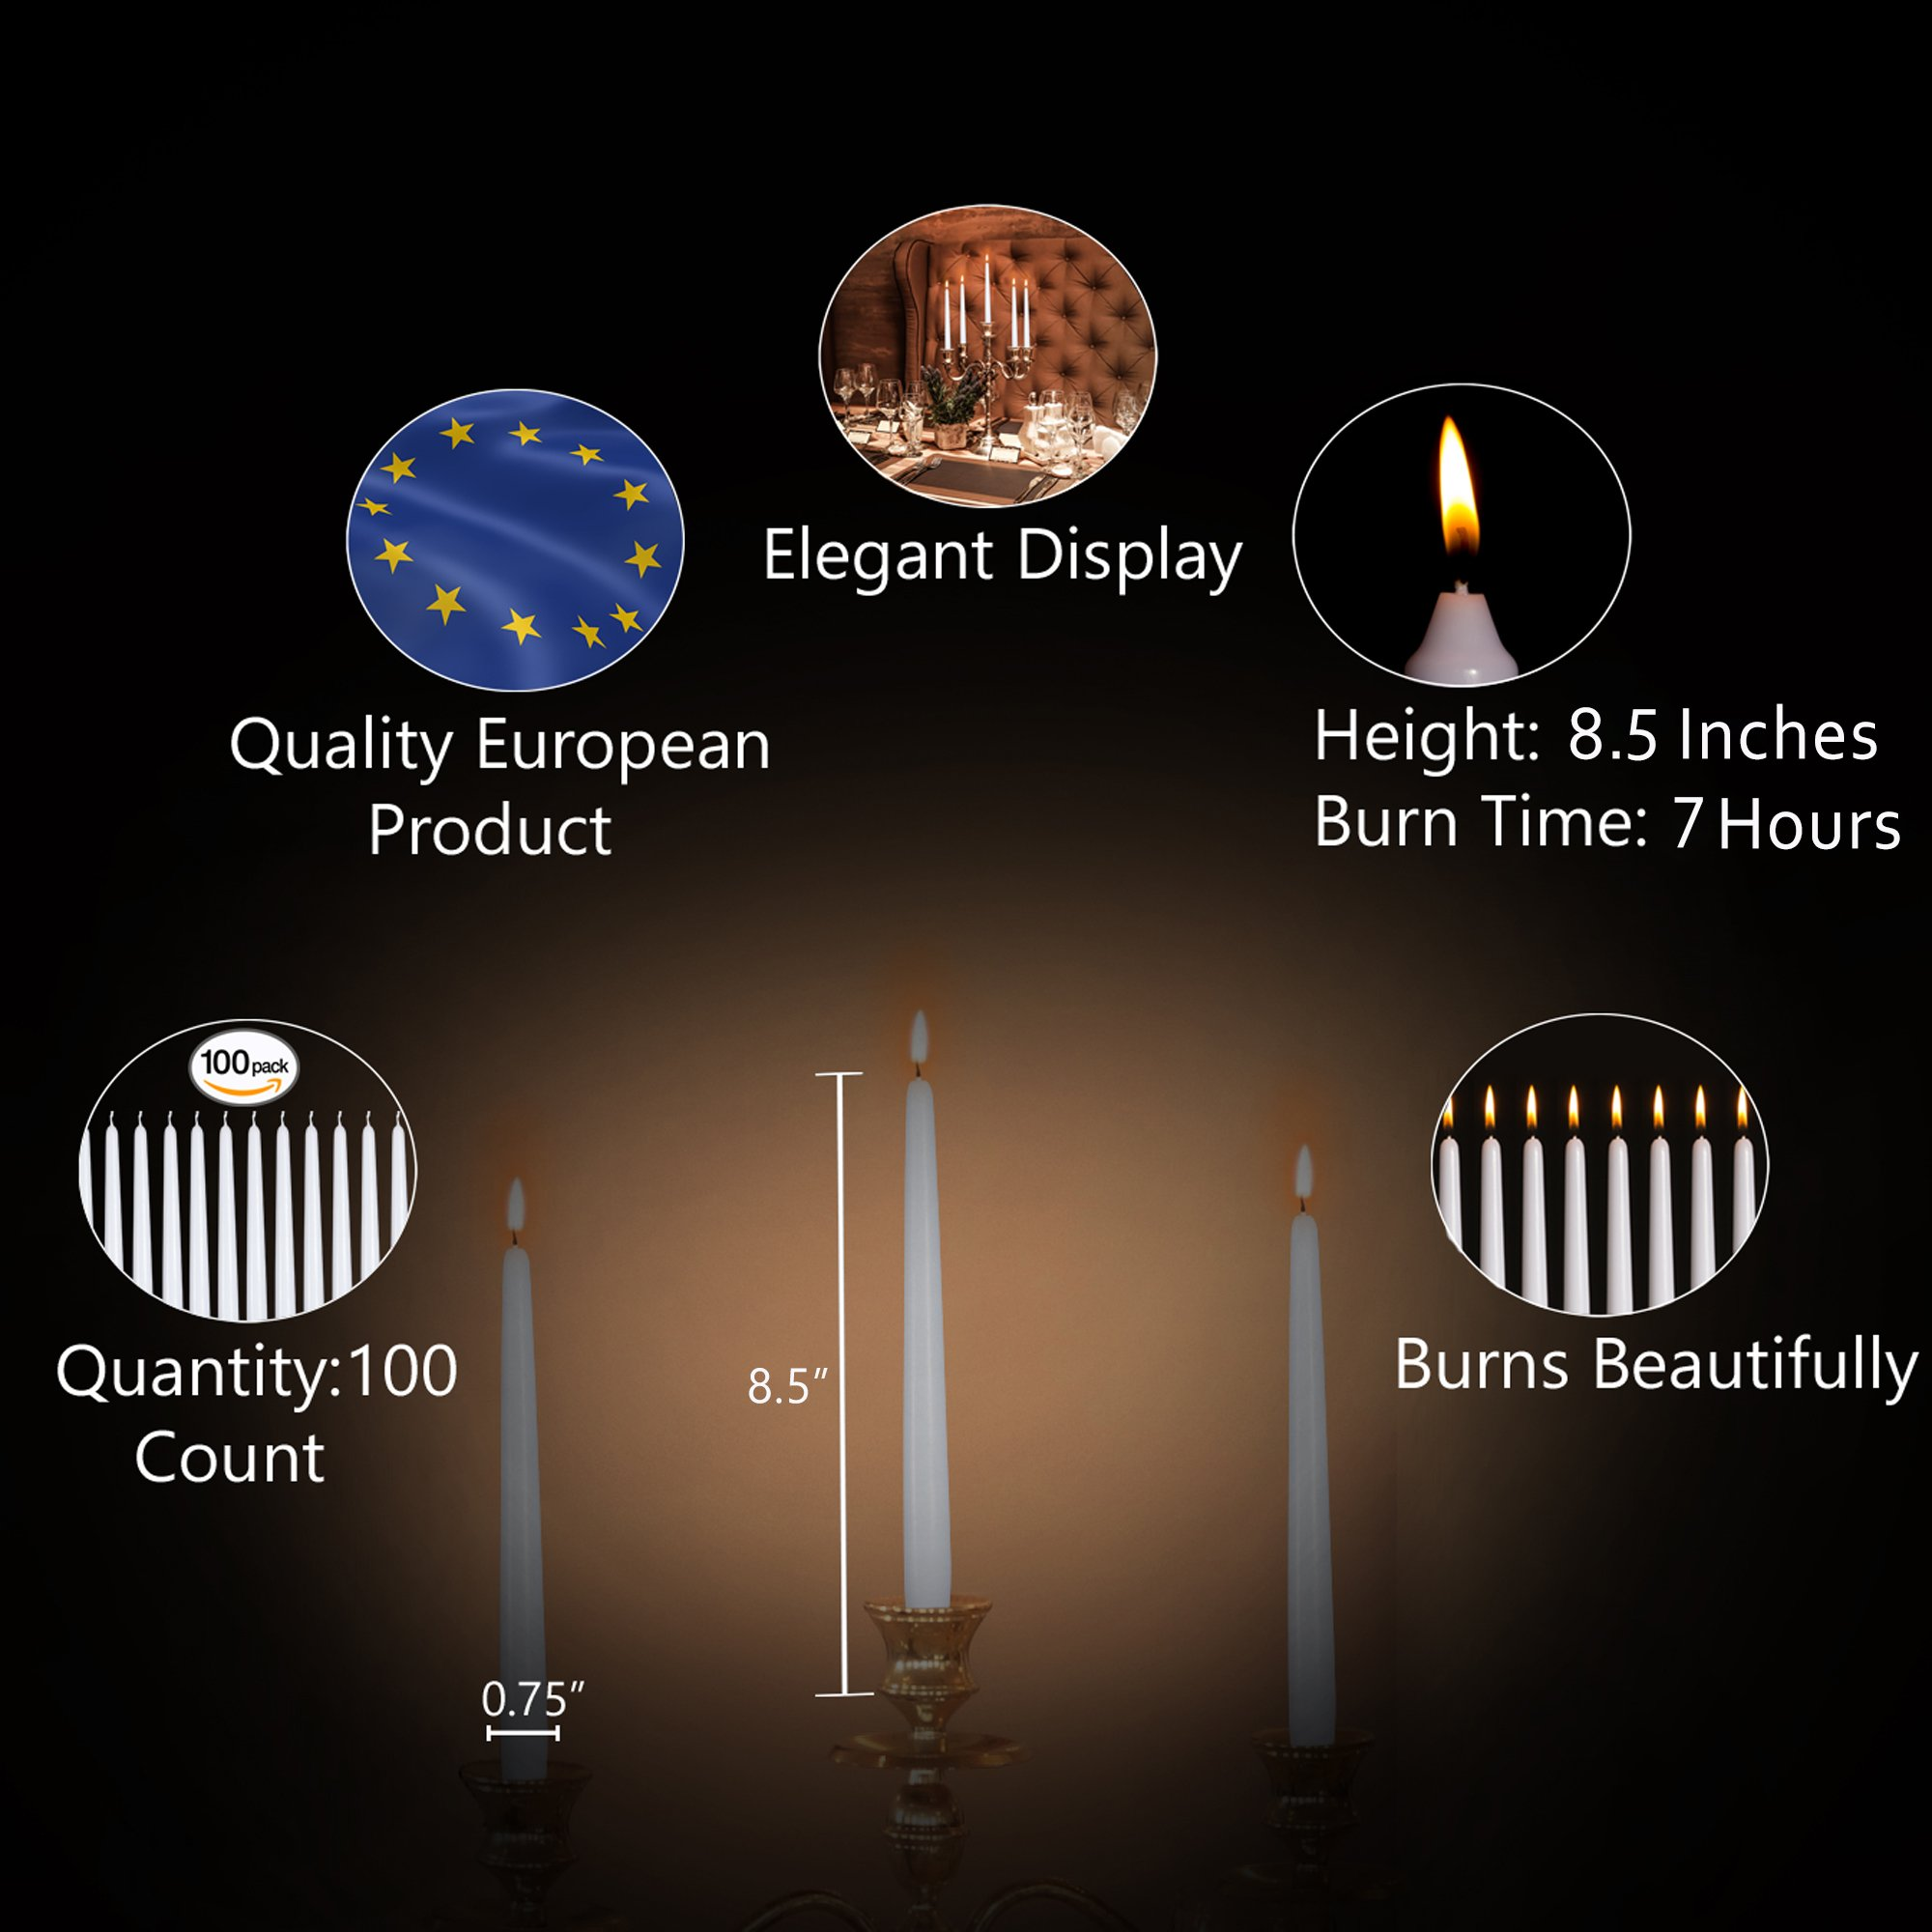 Ner Mitzvah 100 Pack Tall Taper Candles - 8.5 Inch White Dripless, Unscented Dinner Candle - Paraffin Wax with Cotton Wicks - 7 Hour Burn Time by Ner Mitzvah (Image #2)